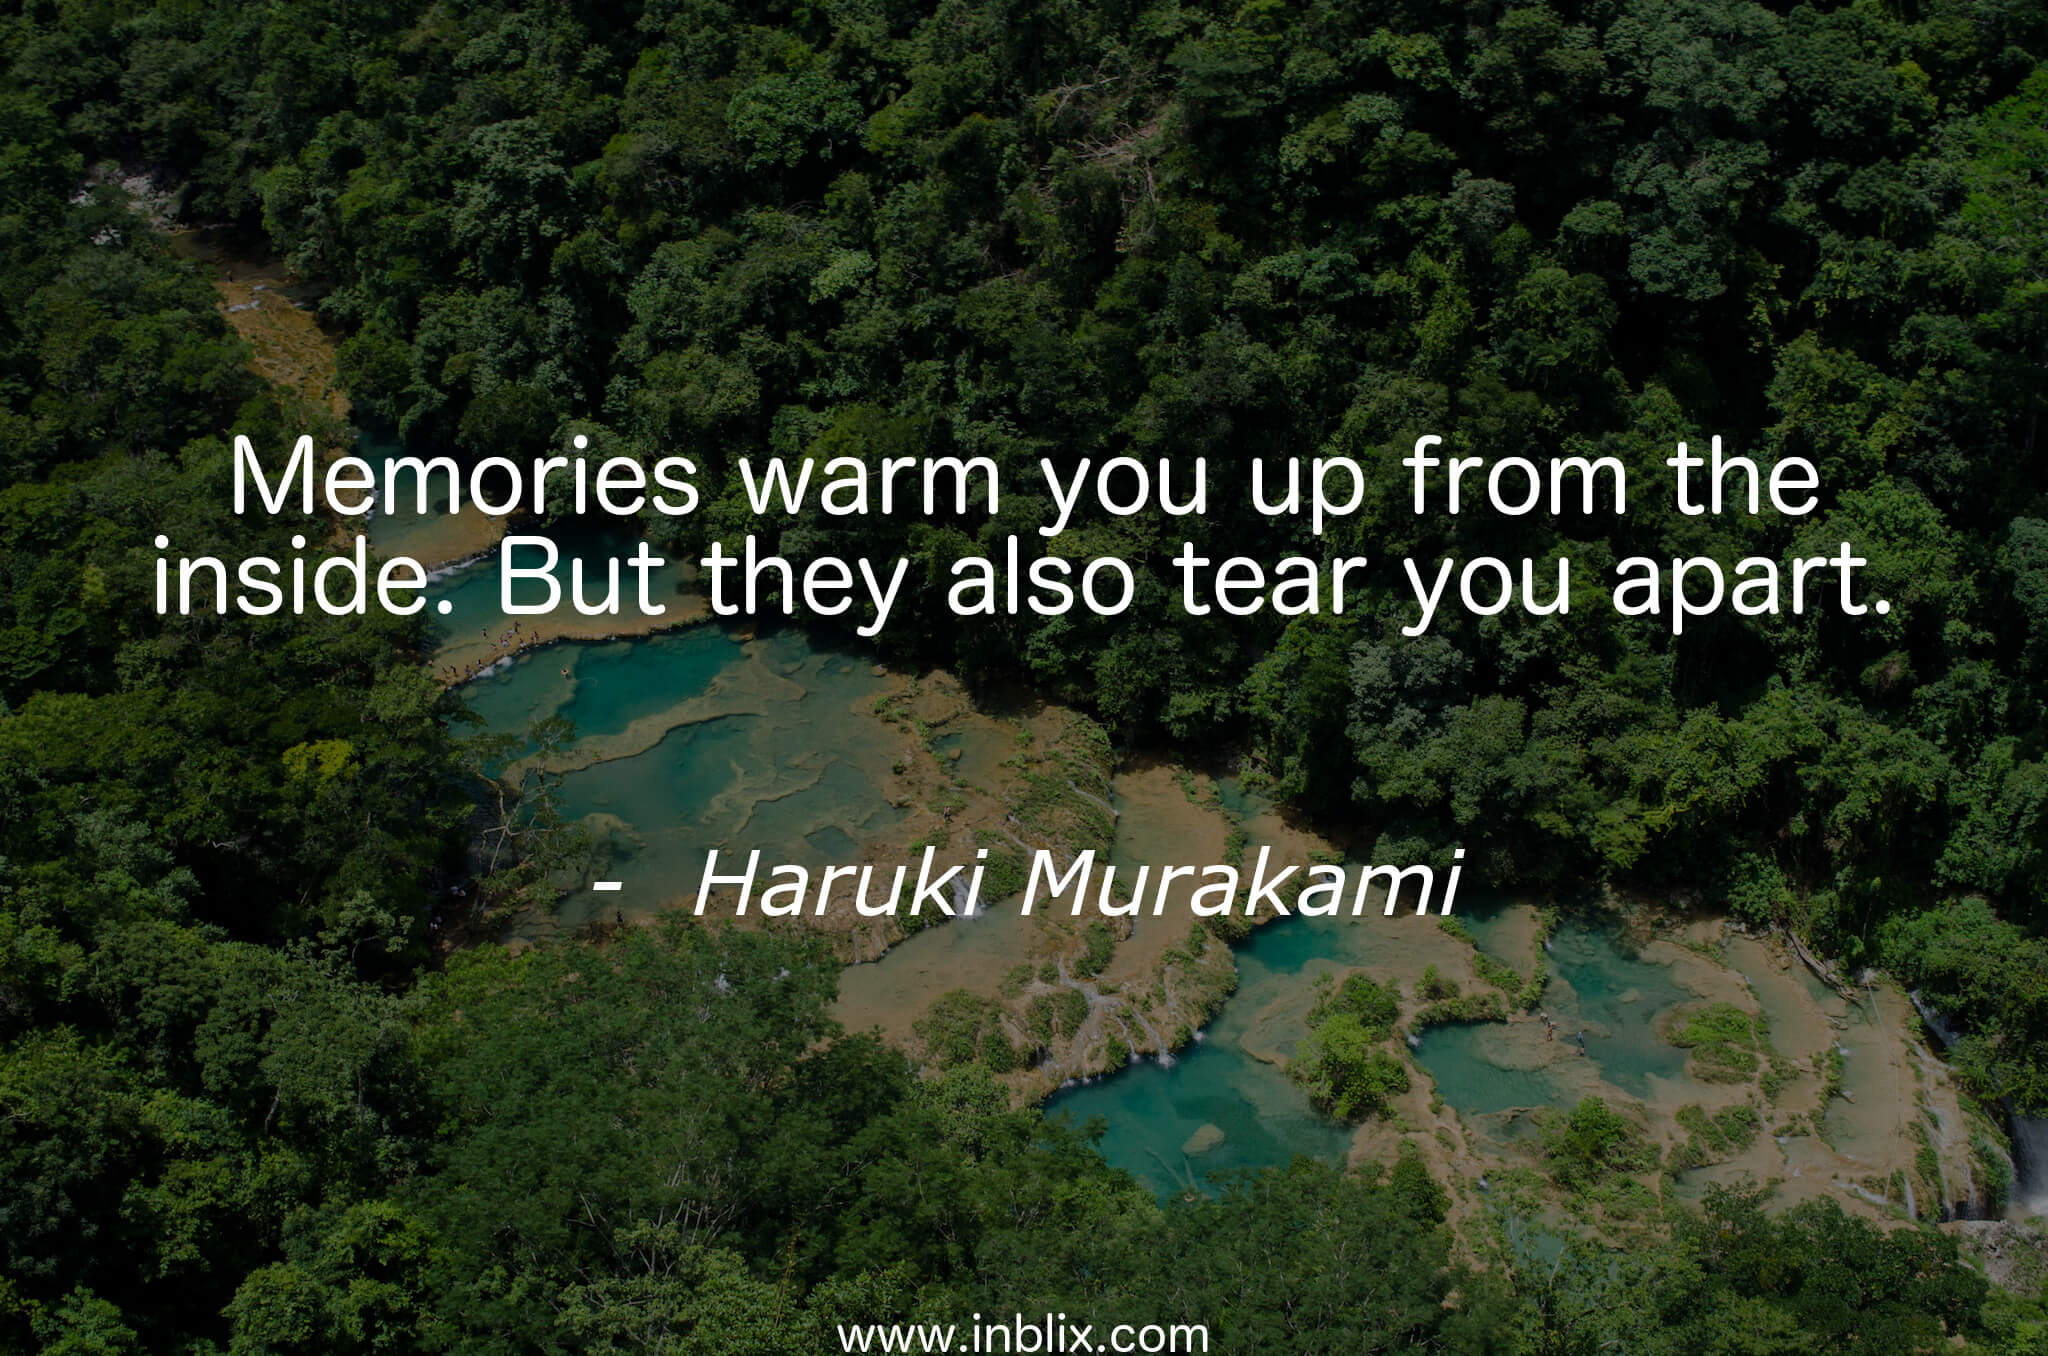 Memories warm you up from the inside. But they also tear you apart.